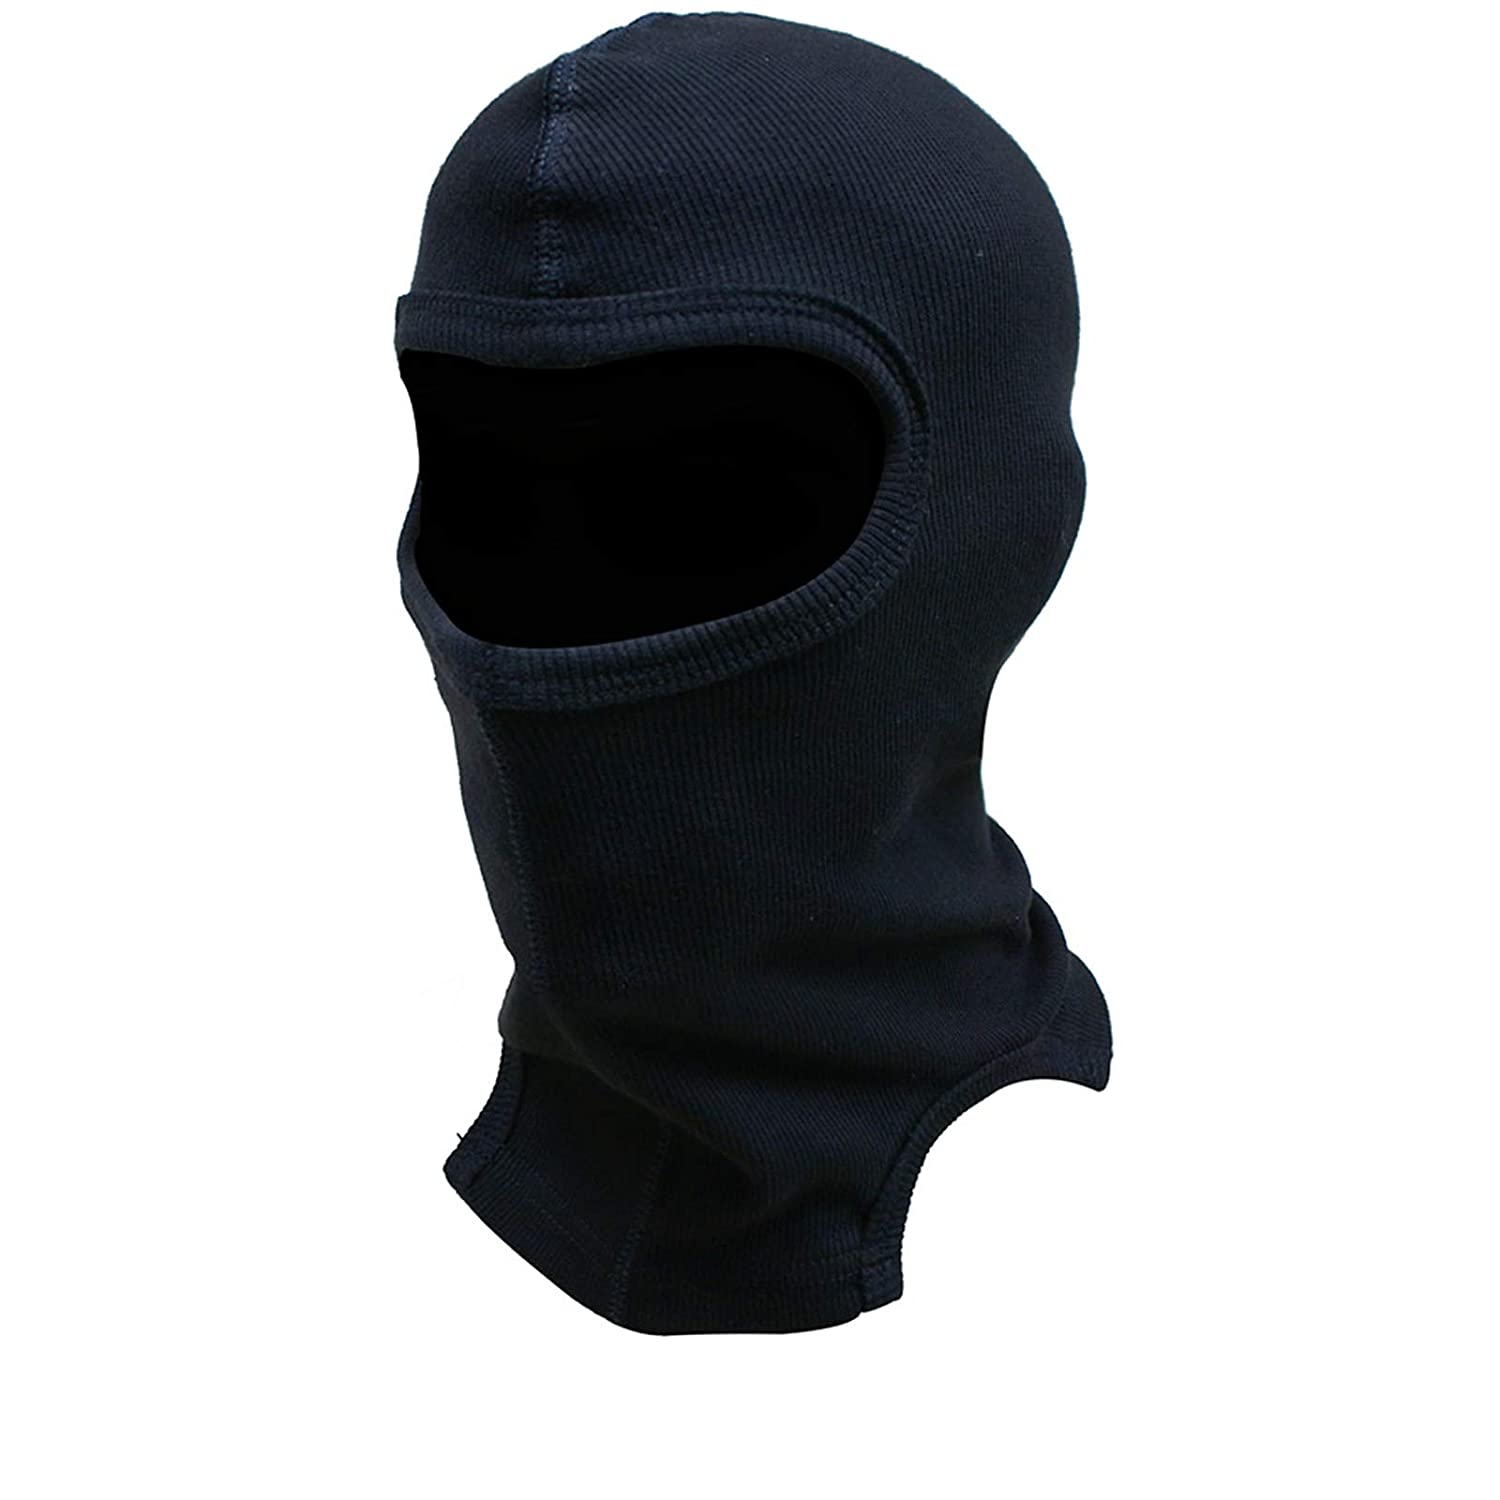 5003 Black Windproof Motorcycle Balaclava